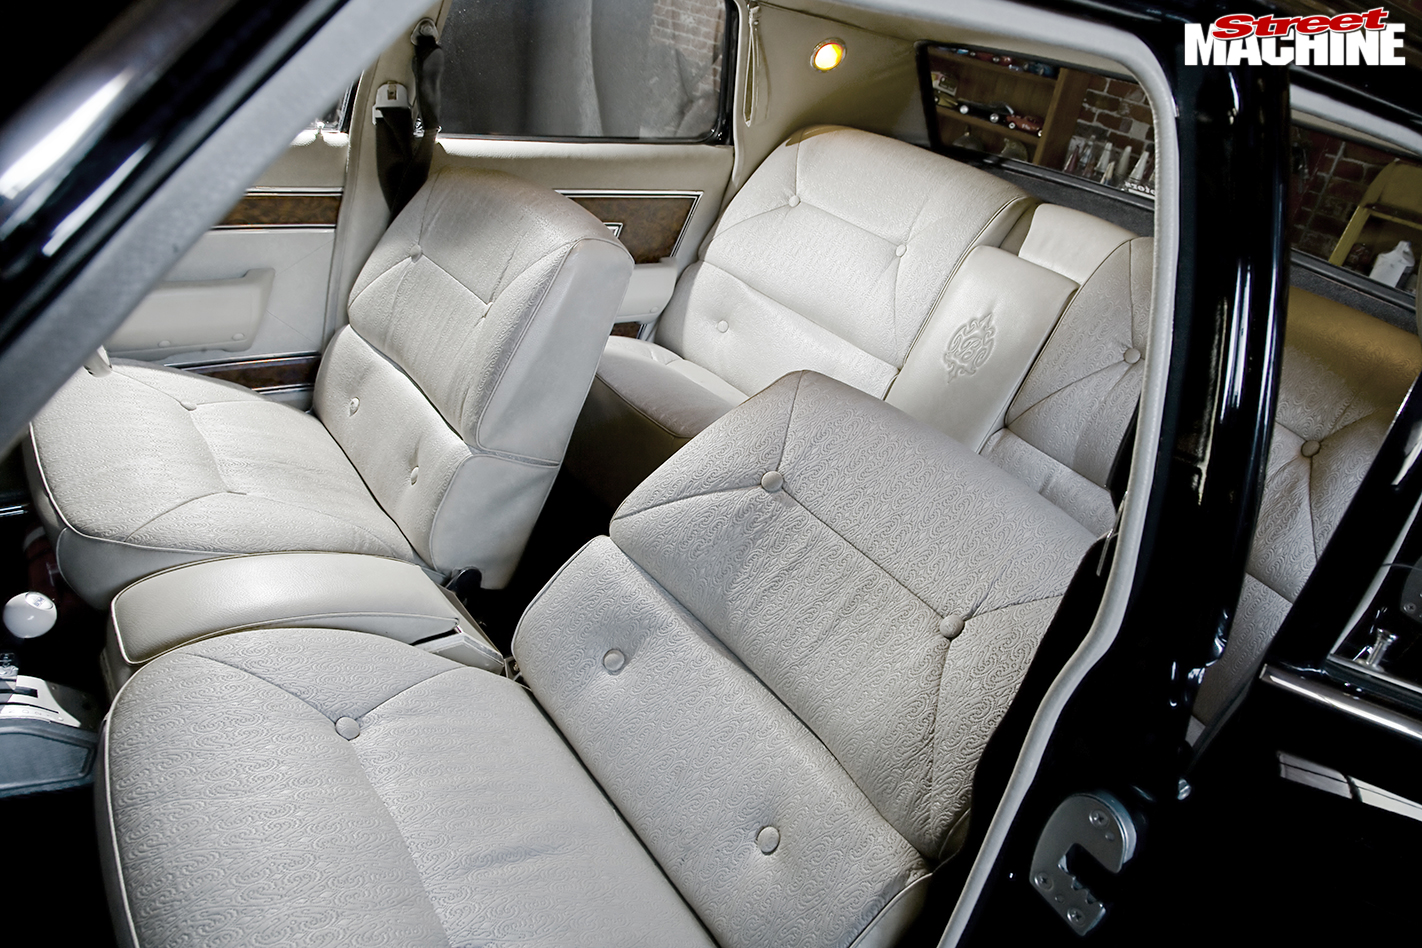 Holden -Brougham -interior -seats